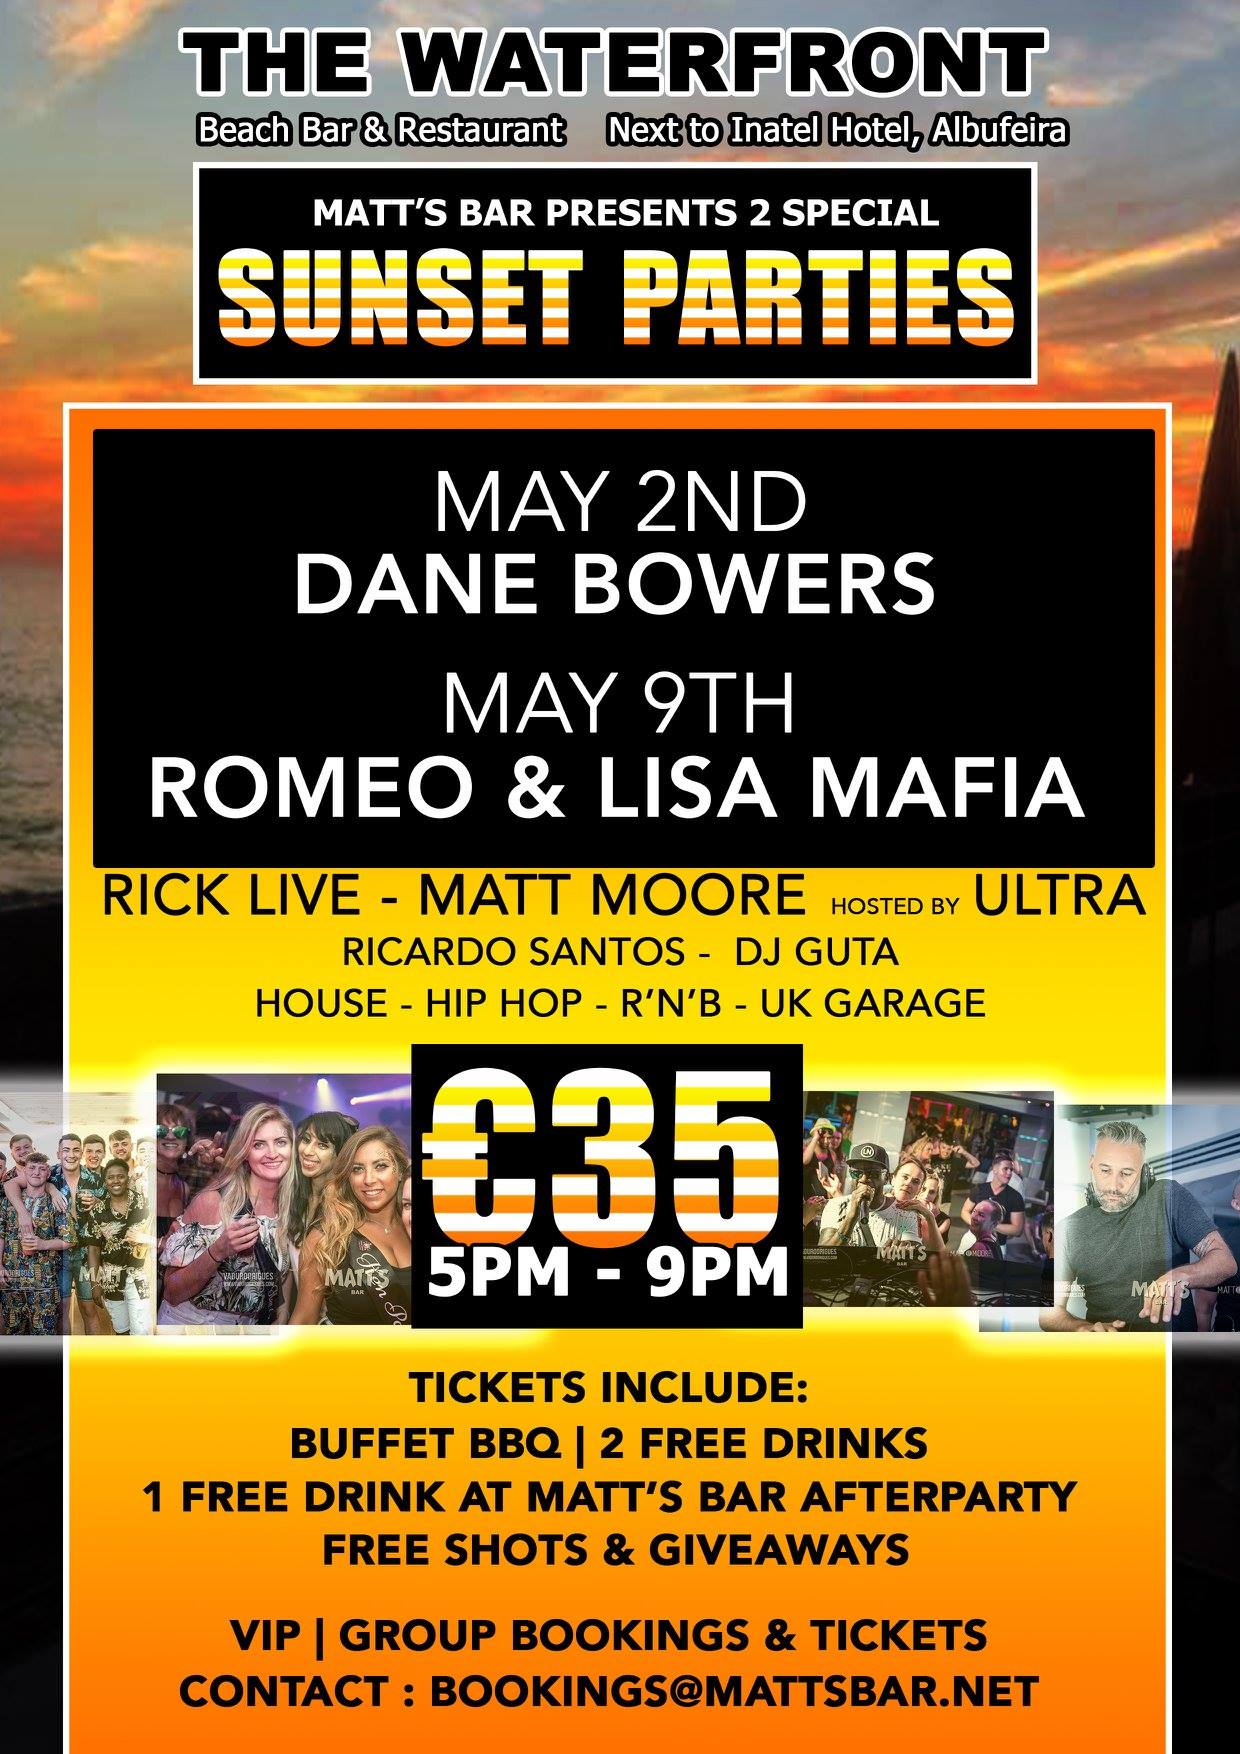 SUNSET PARTY SPECIAL EVENT – DANE BOWERS